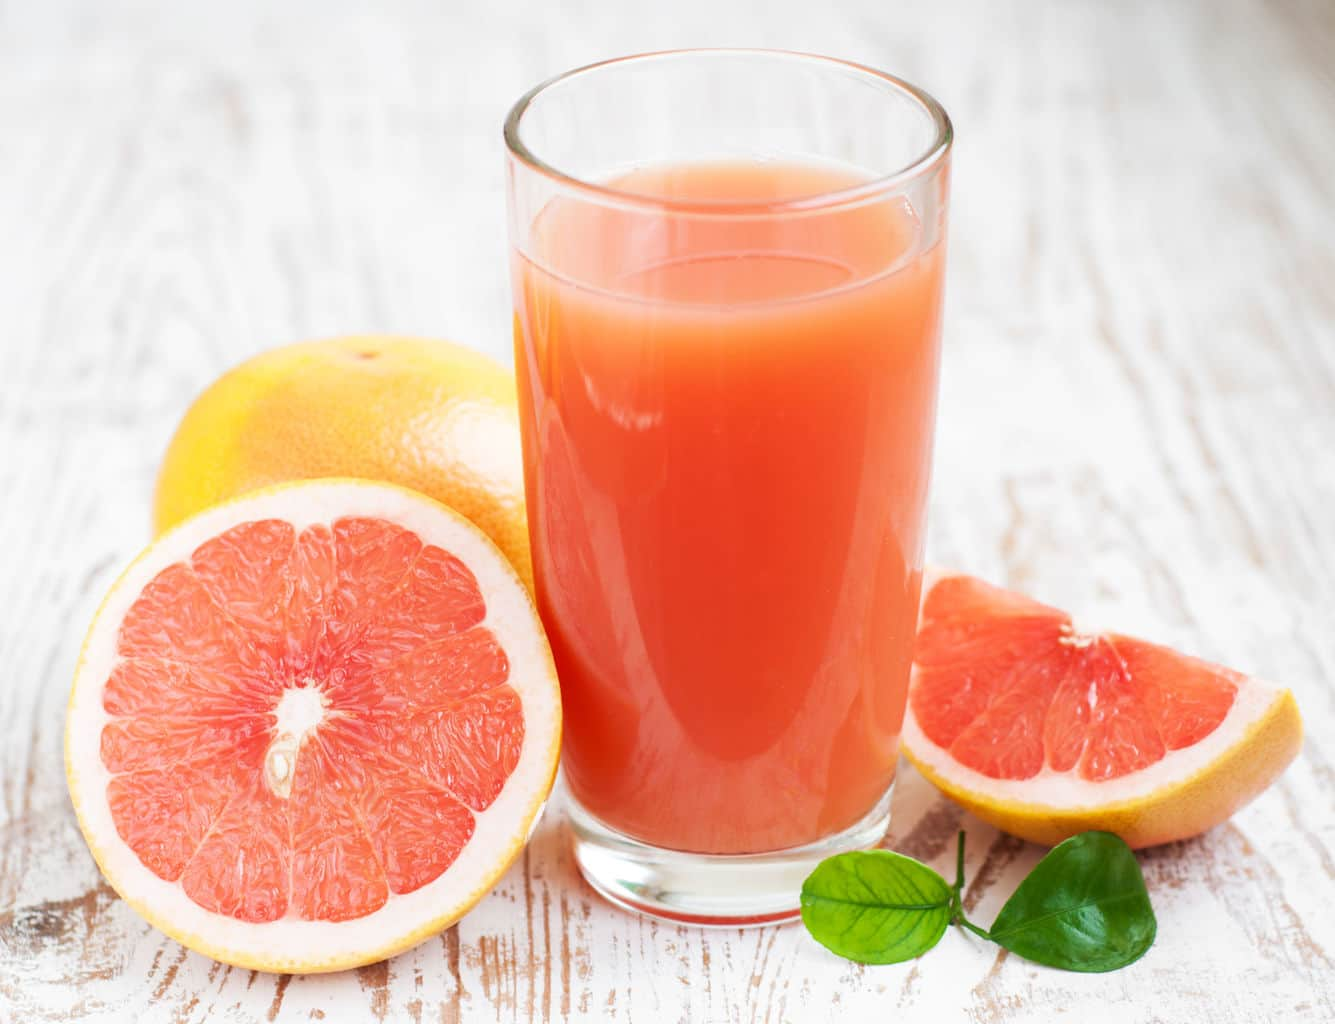 Grapefruit juice increases estrogen?